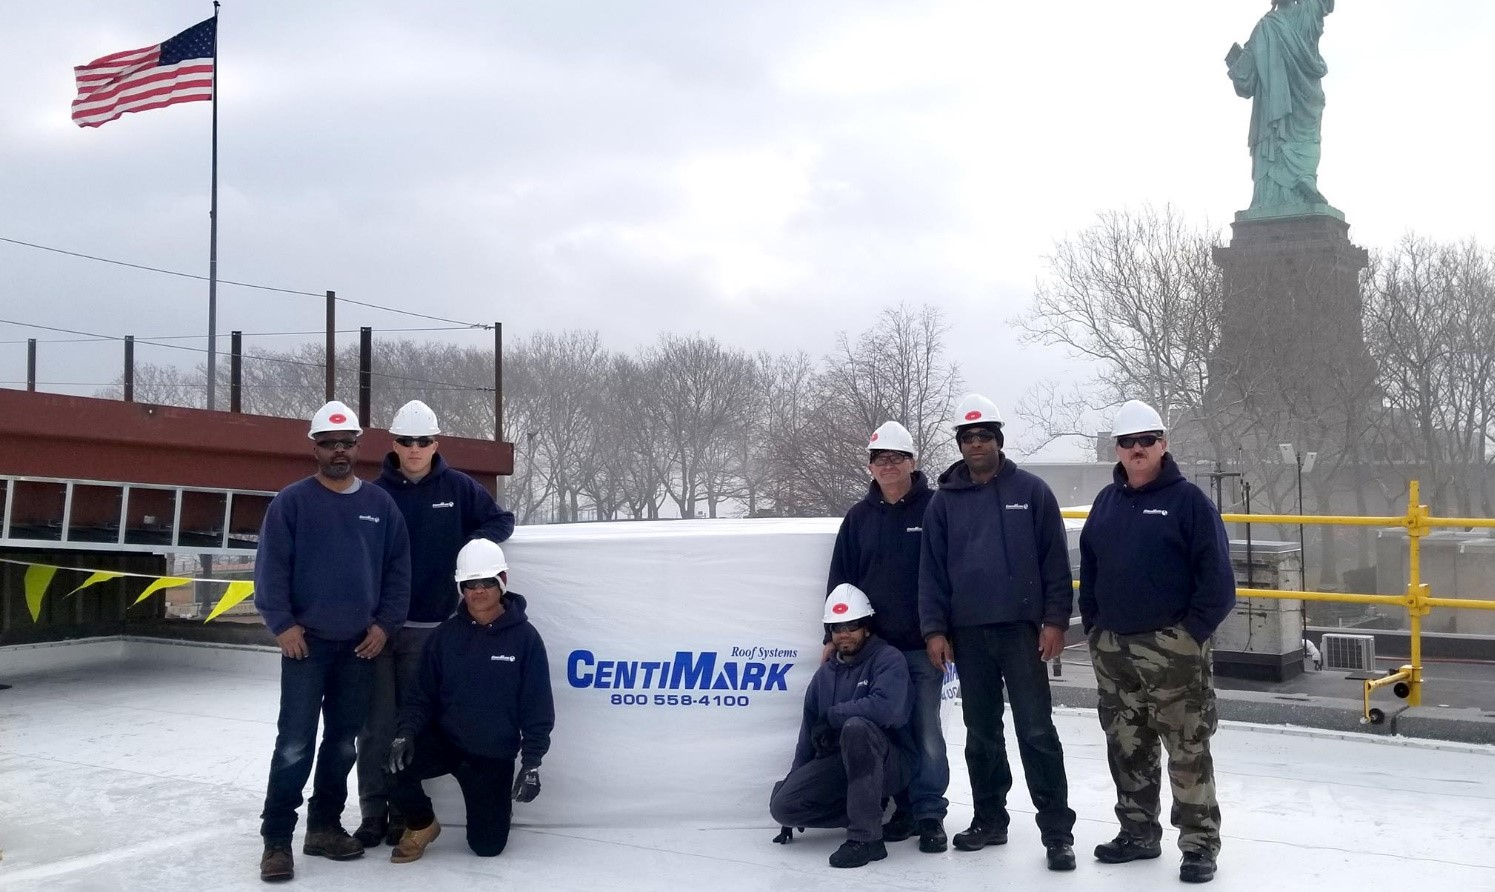 CentiMark team at the job site in New York